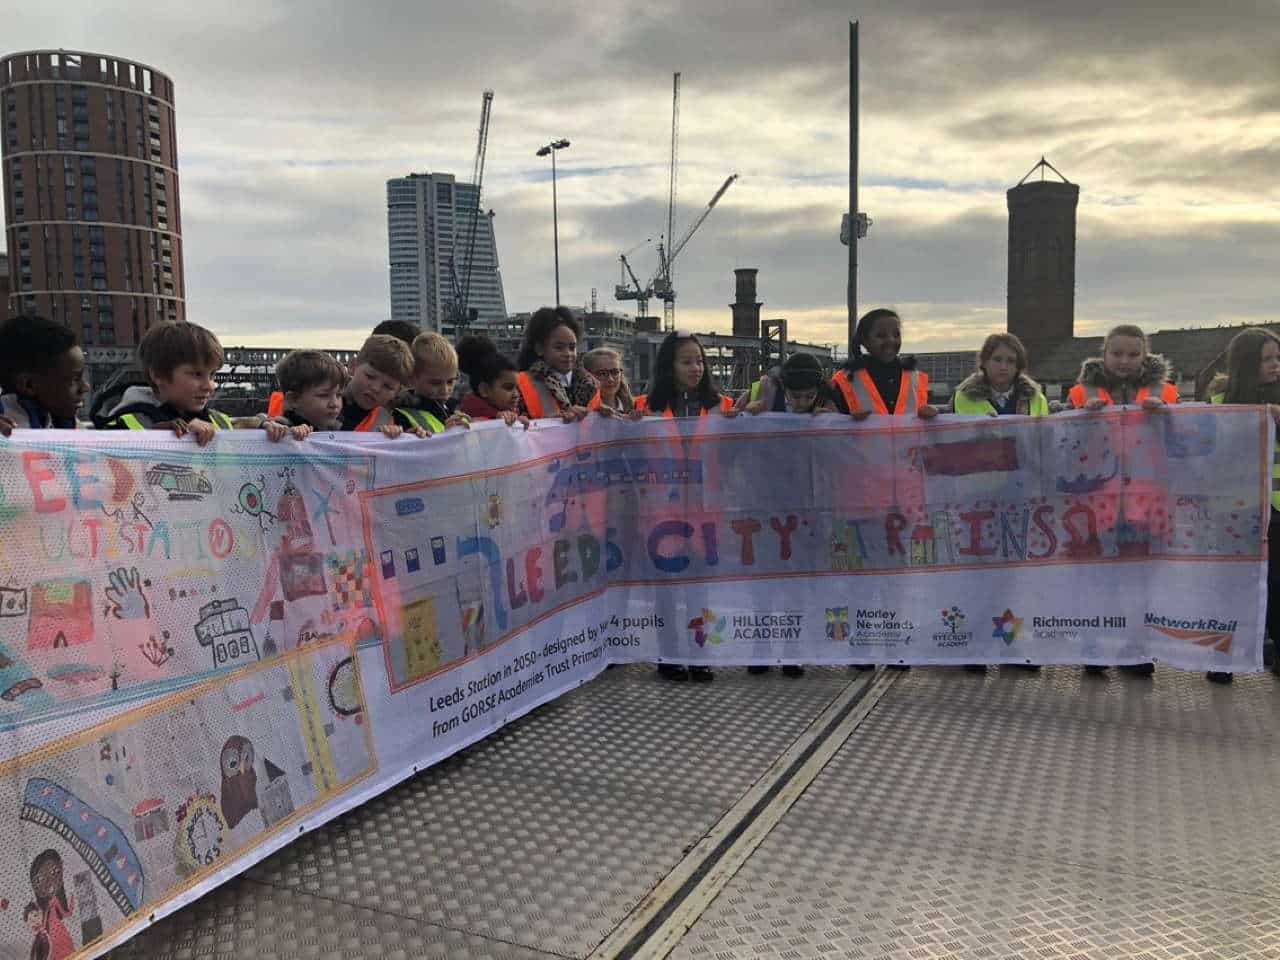 Leeds pupils have day out at railway station